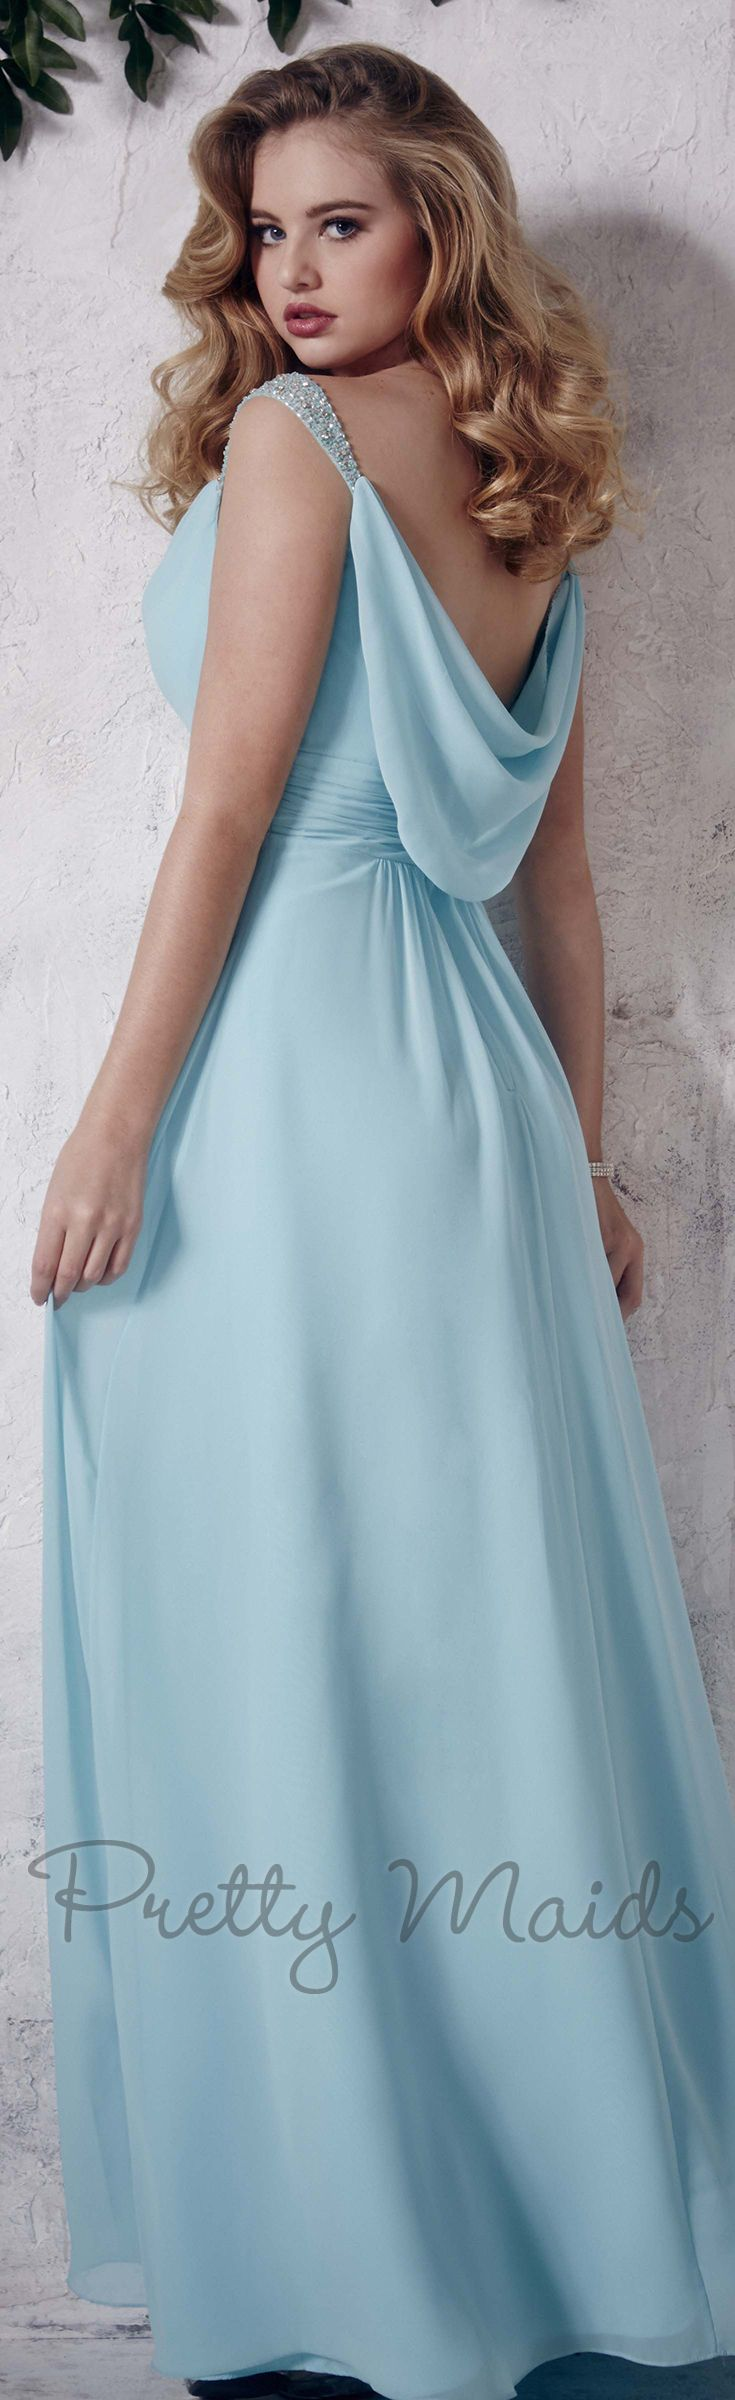 22655 bridesmaid dress for Pretty Maids. View more bridemaid dresses ...